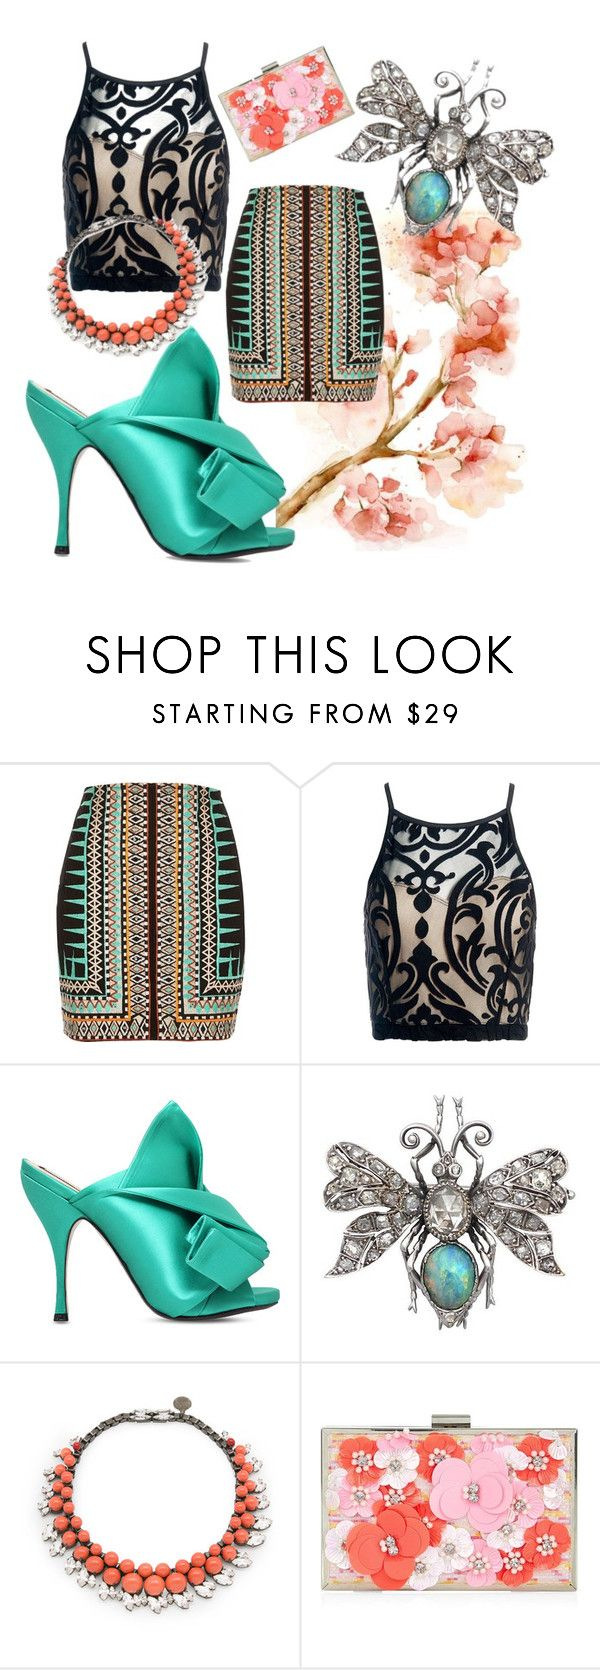 """""""Aqua Blossom"""" by anypalacios ❤ liked on Polyvore featuring River Island, Sans Souci, N°21, Ellen Conde and New Look"""